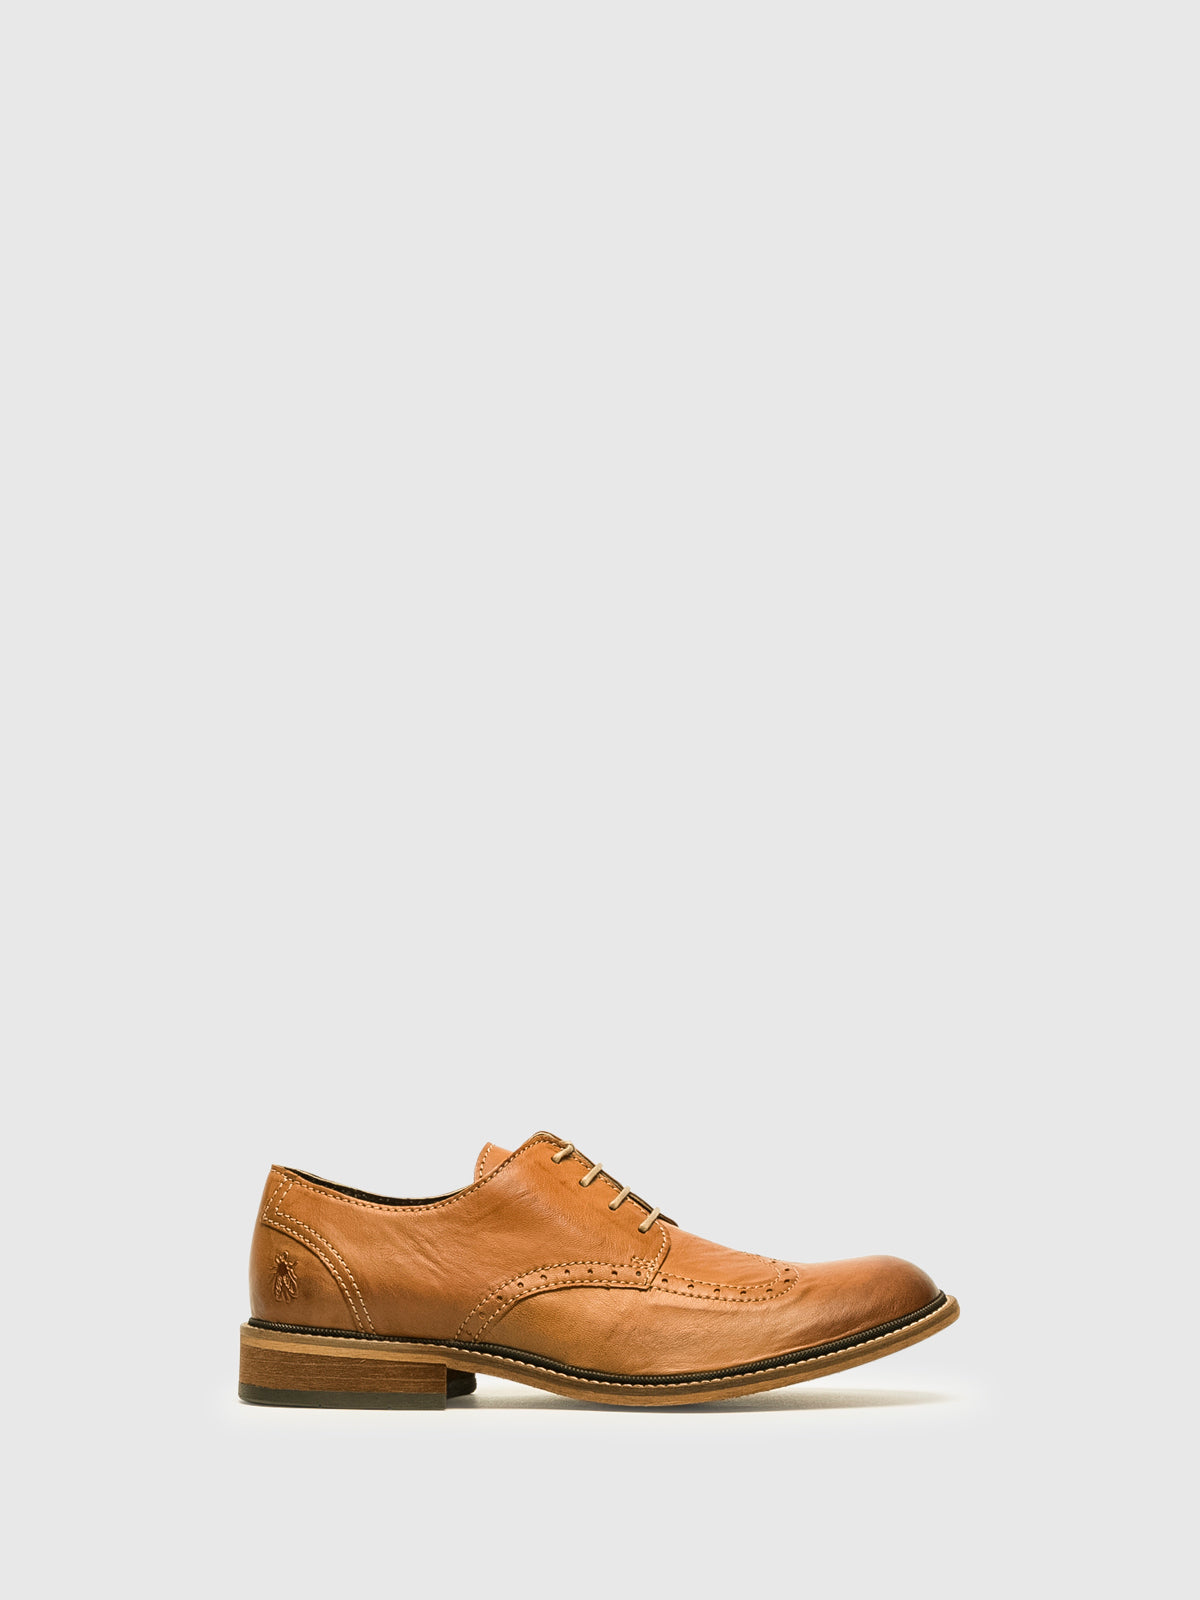 Fly London Chocolate Brown Derby Shoes